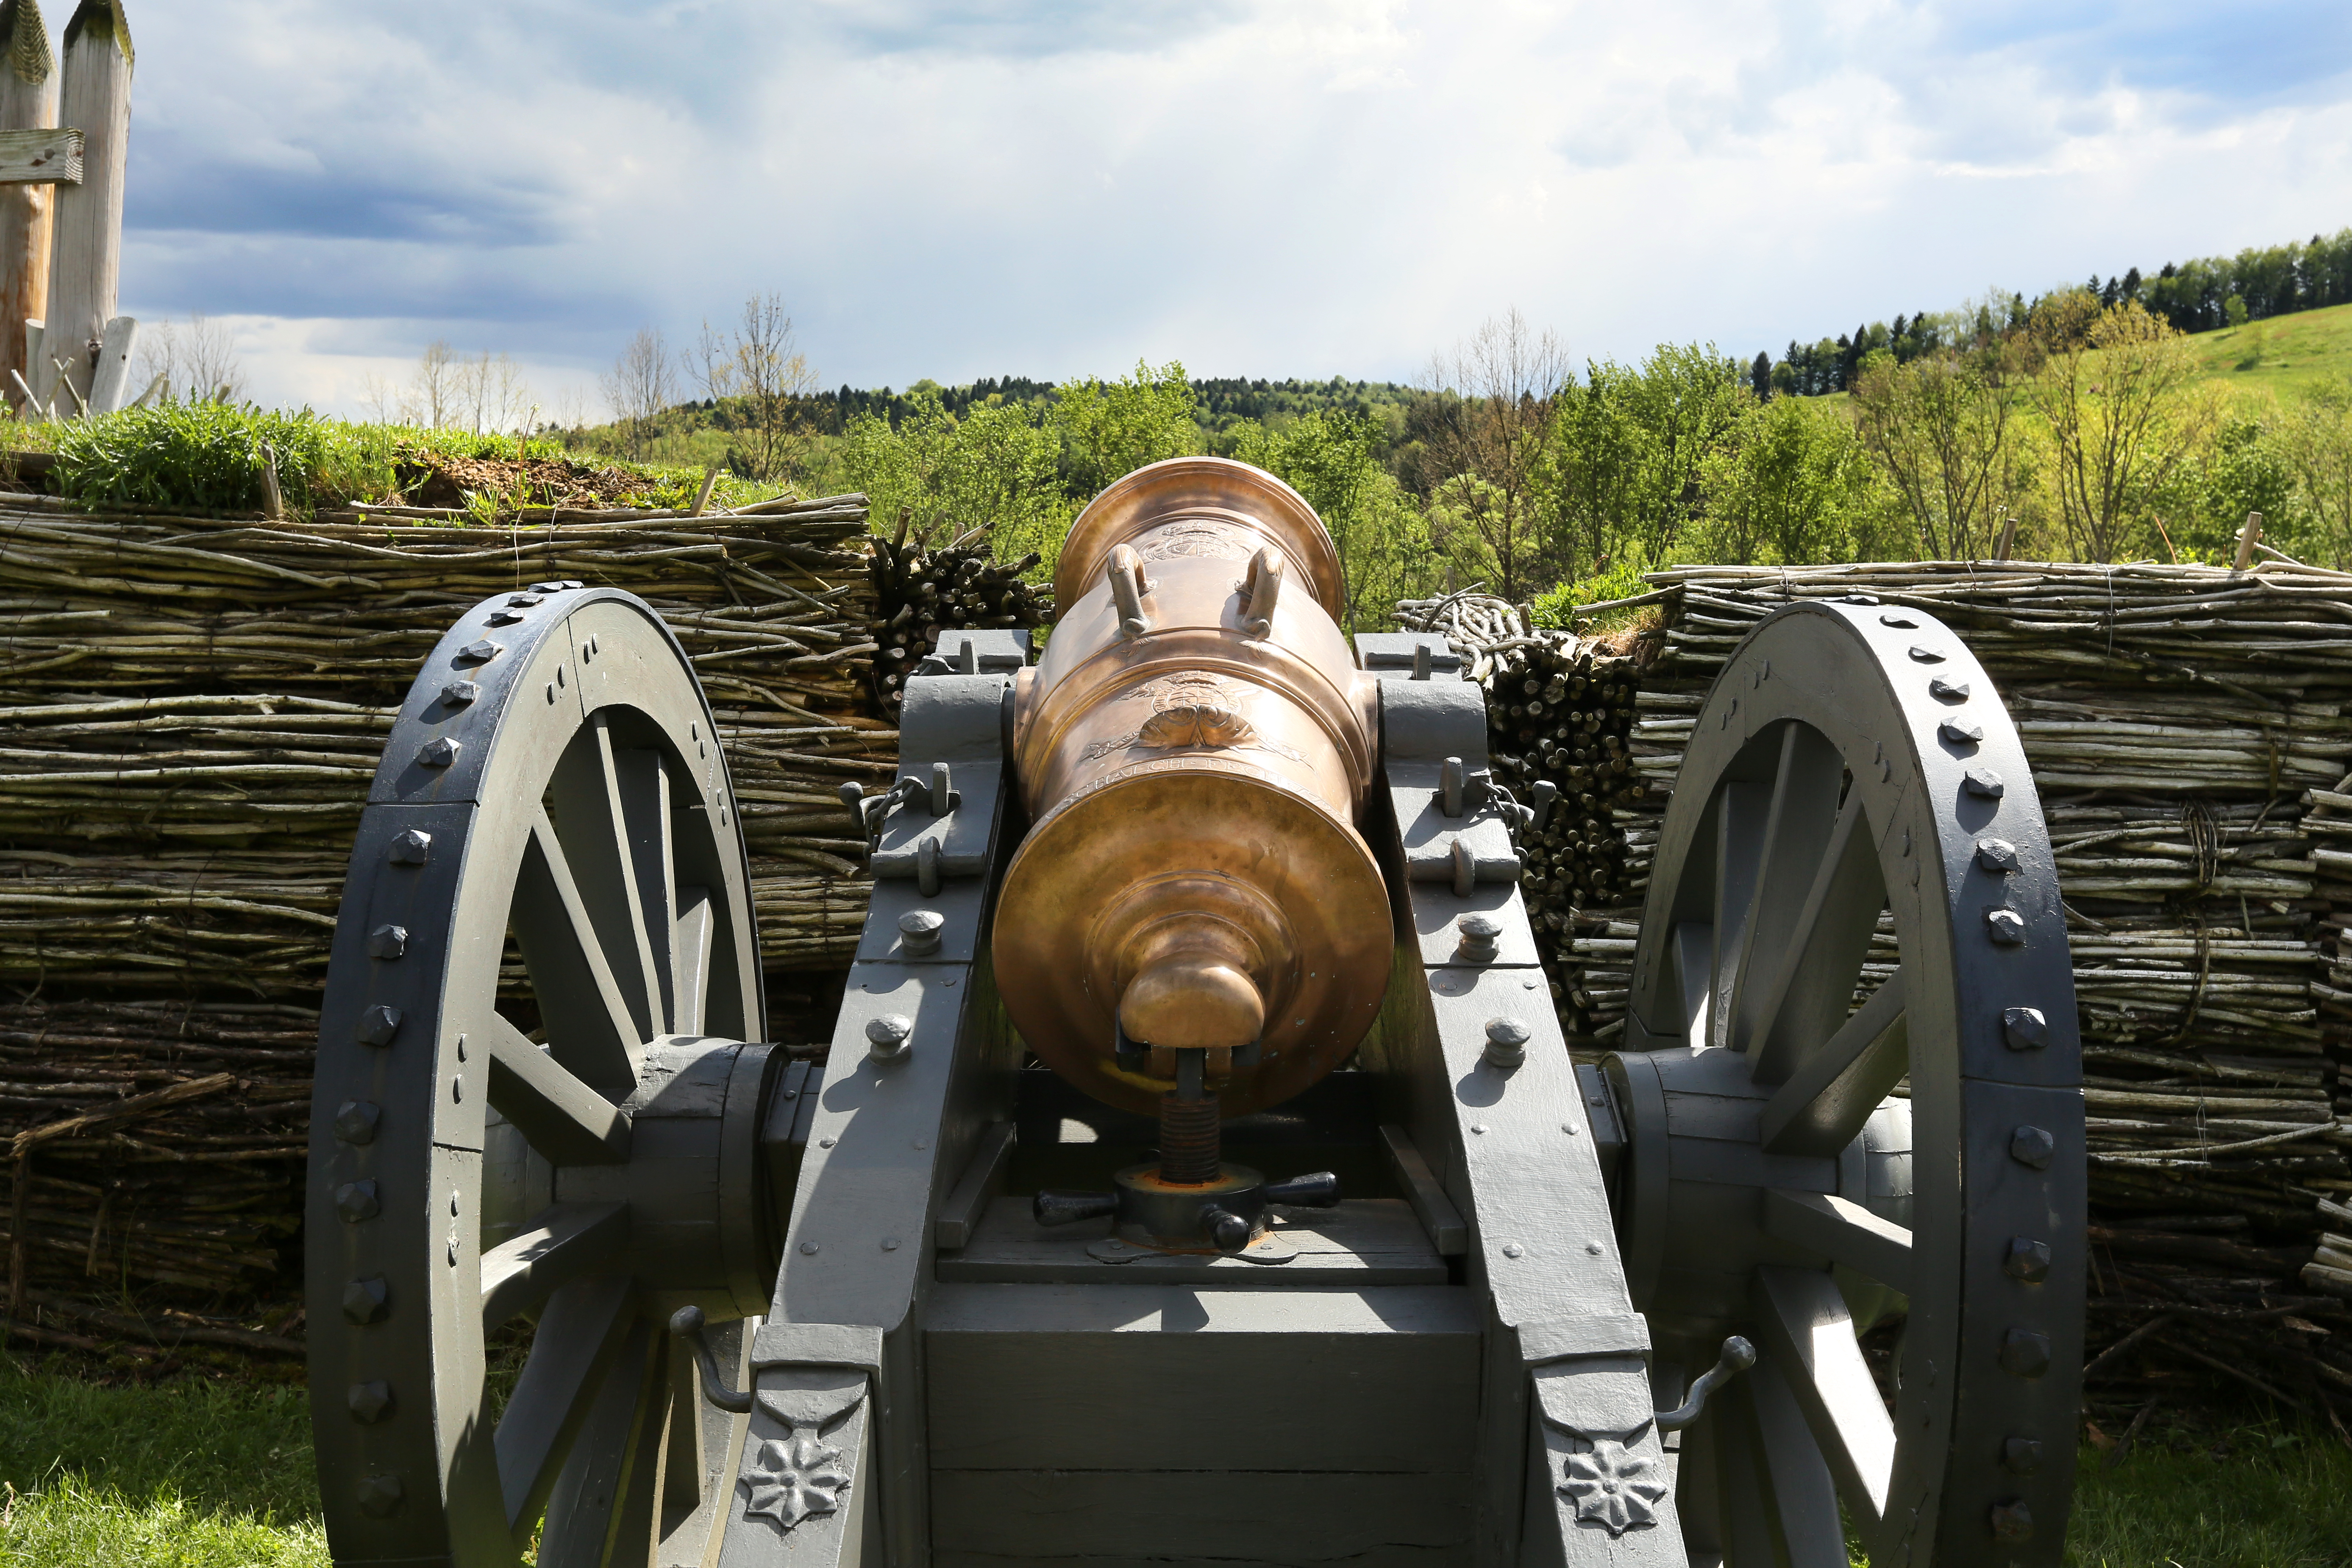 Cannons and Cocktails – Rain or Shine!